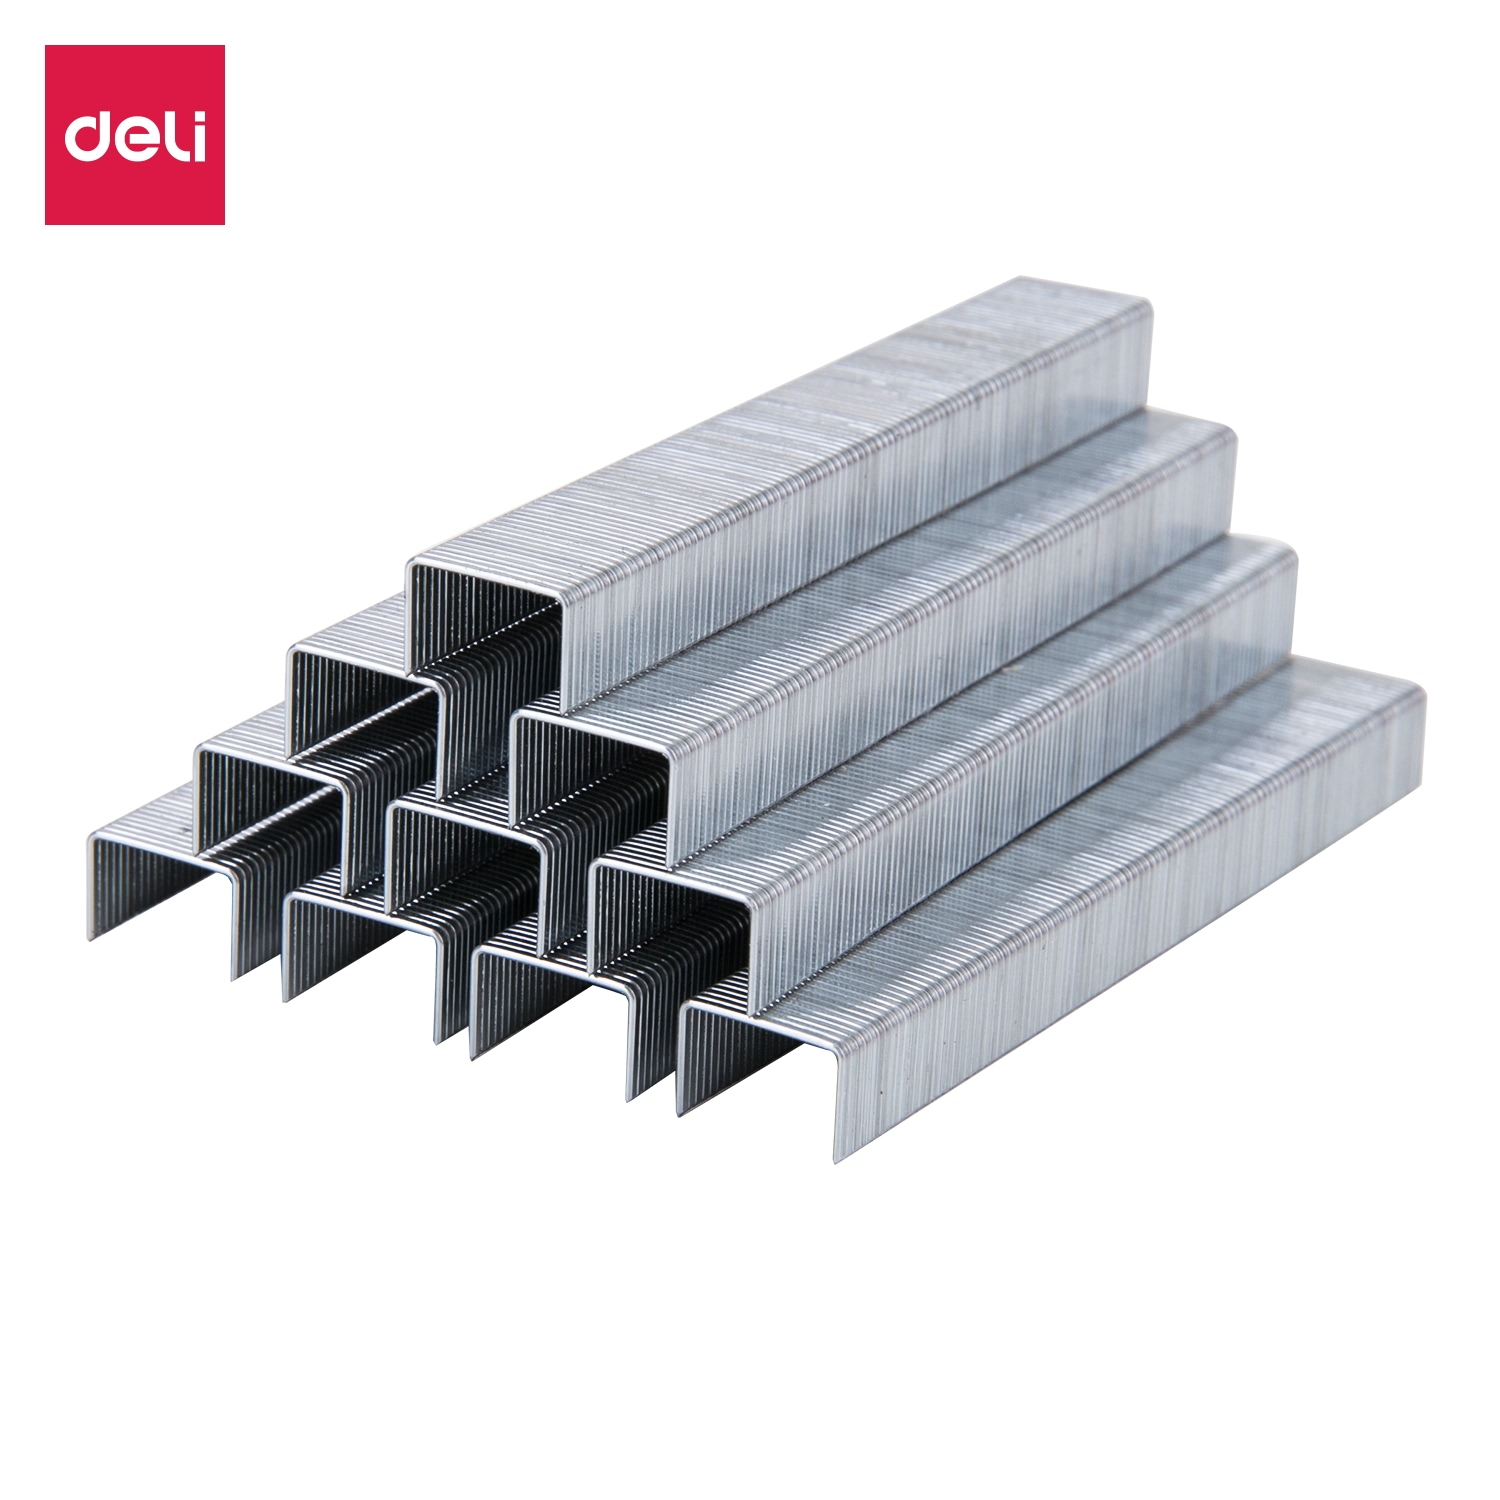 Deli ET70110 Tacker Staples 53/8  1000 Pcs Per Box Zinc Plated Wire Iron Nail Staple For Speciality Stapler